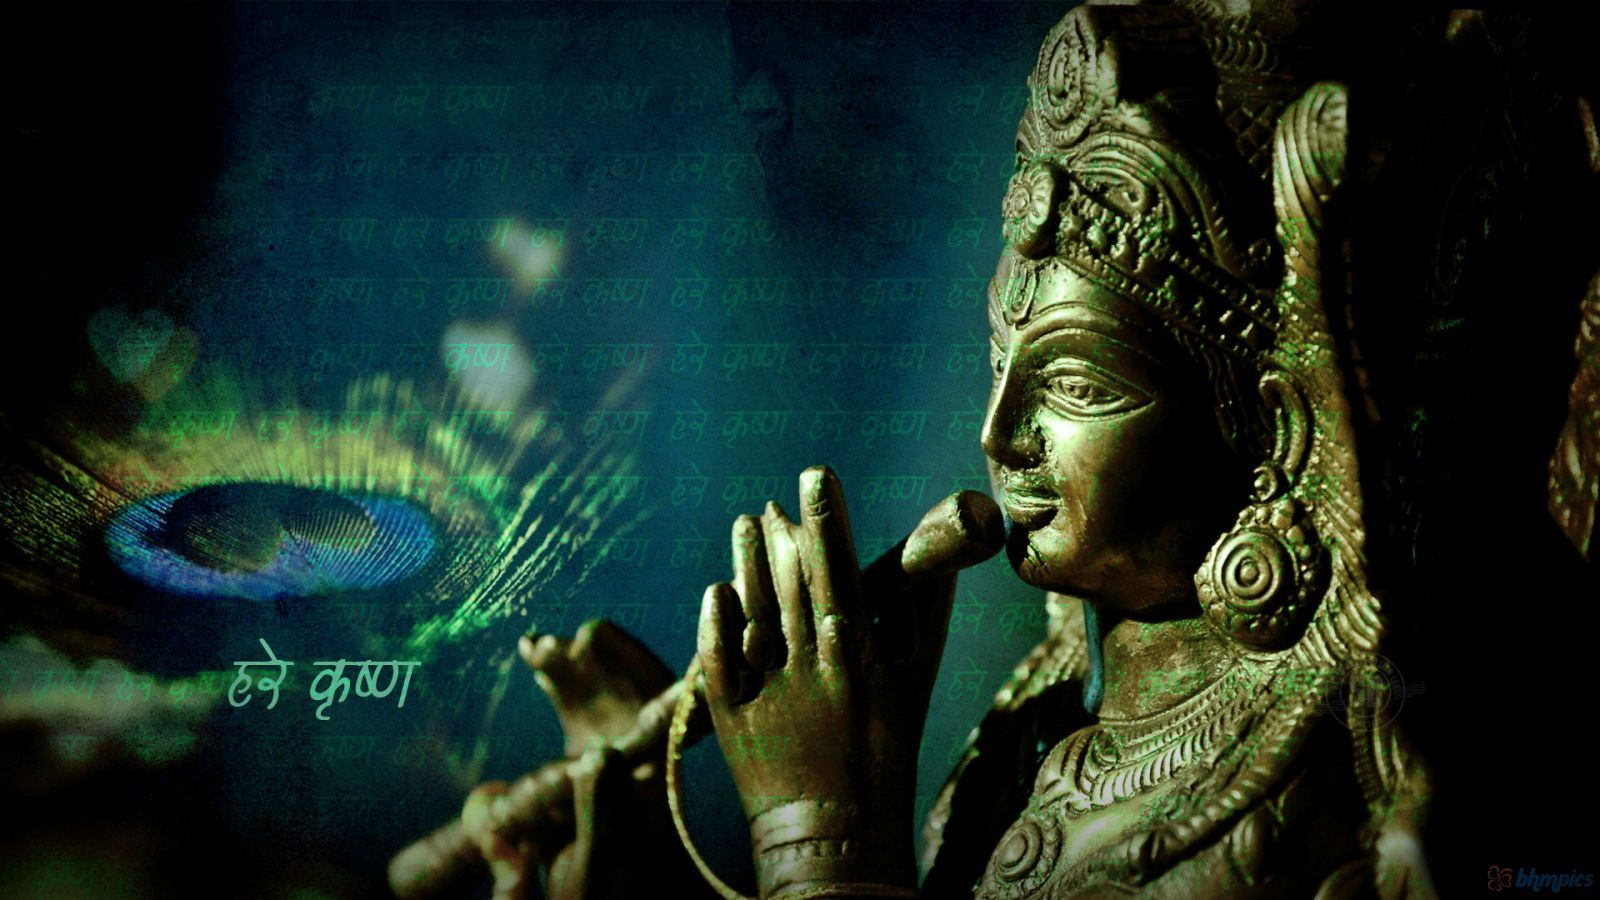 Full Hd P Photography Wallpapers Backgrounds Hd Photography 1024 768 Hd Photography Wallpapers 1080p Lord Krishna Wallpapers Lord Krishna Krishna Wallpaper